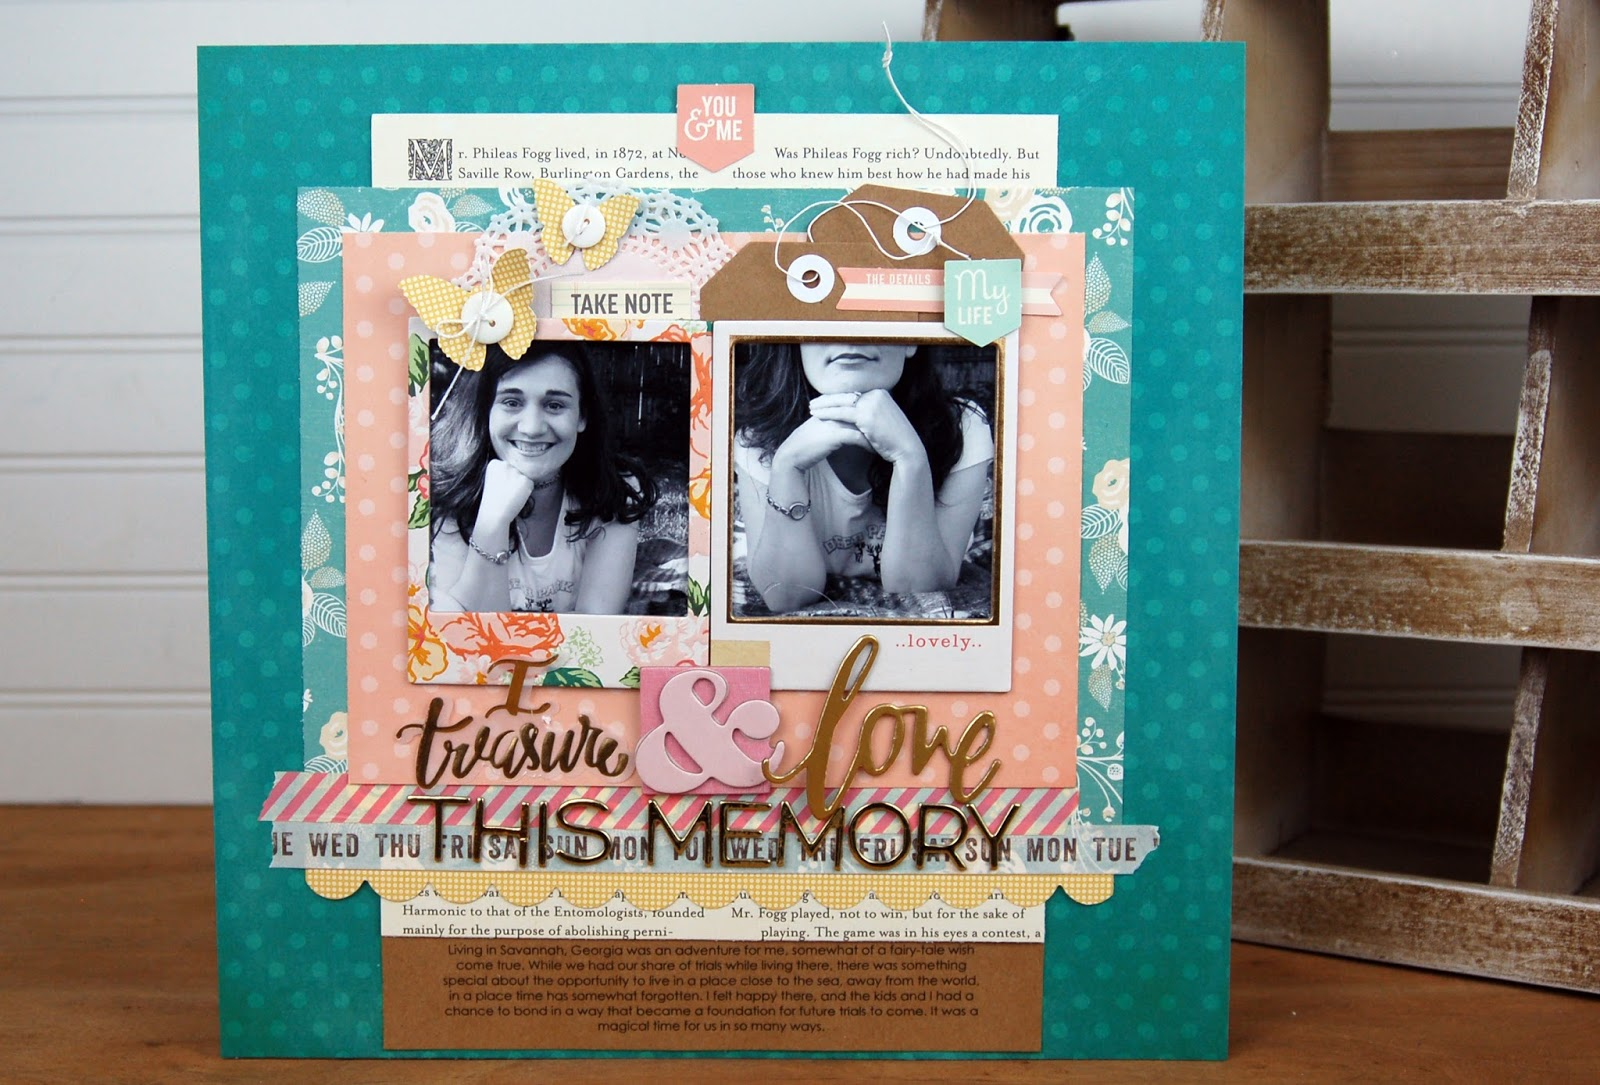 http://4.bp.blogspot.com/-dRaujllVfg0/VOH1yIrxp_I/AAAAAAAAT9E/S4By7S5wxYc/s1600/I-Treasure-and-Love-This-Memory-Layout-by-Jen-Gallacher.jpg